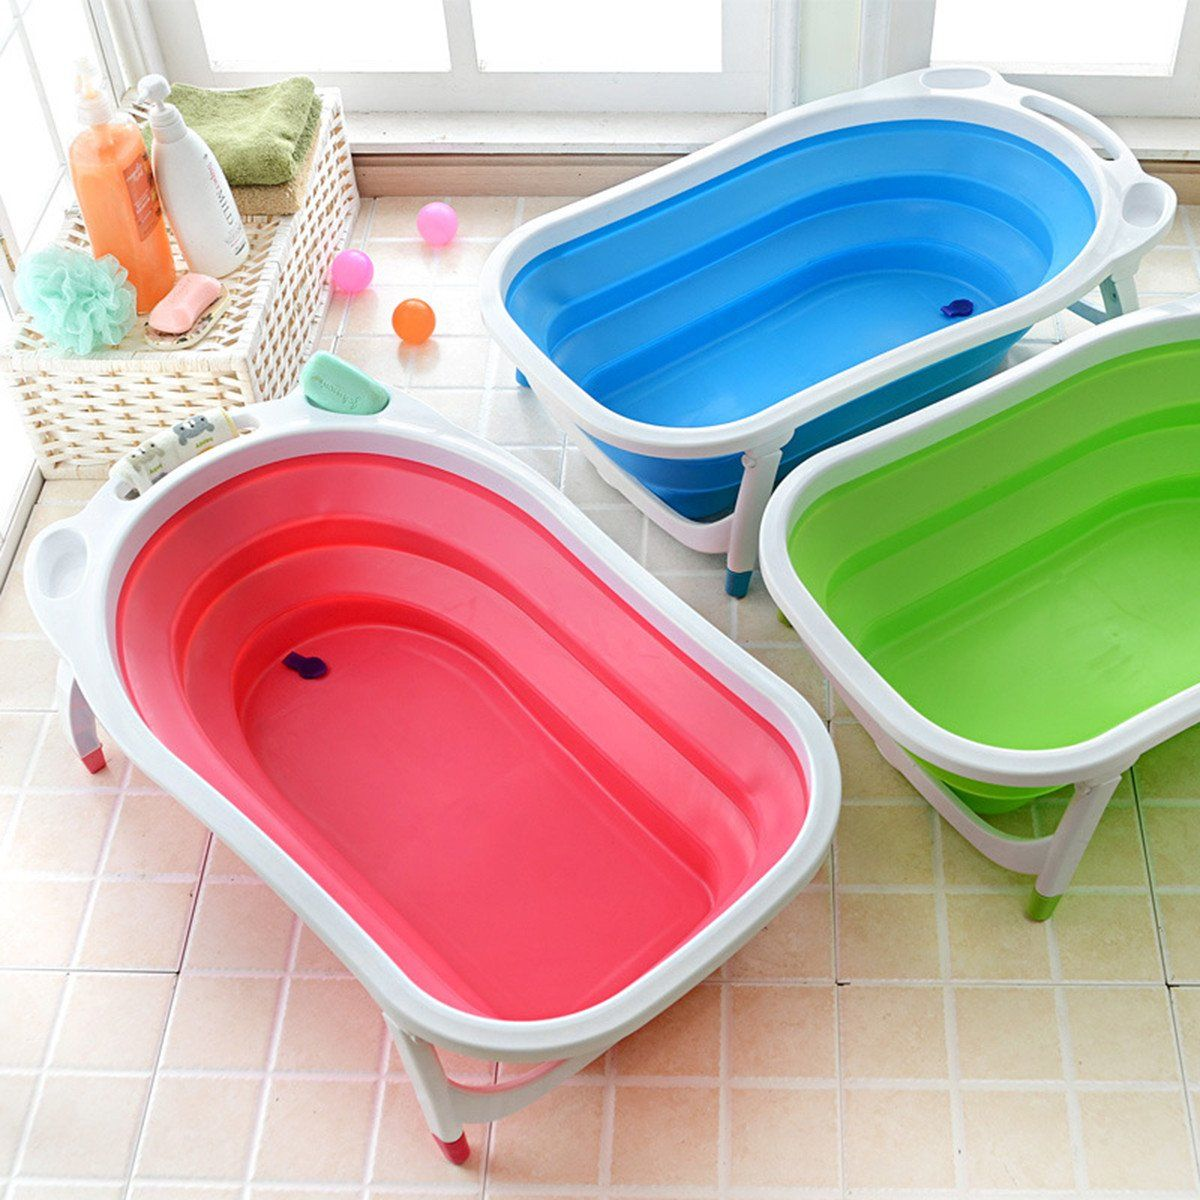 Baby Infant Newborn Bath Bathtub Bathing Folding Safety Foldable Tub Durable Baby Tub Baby Bath Tub Newborn Baby Bath Tub